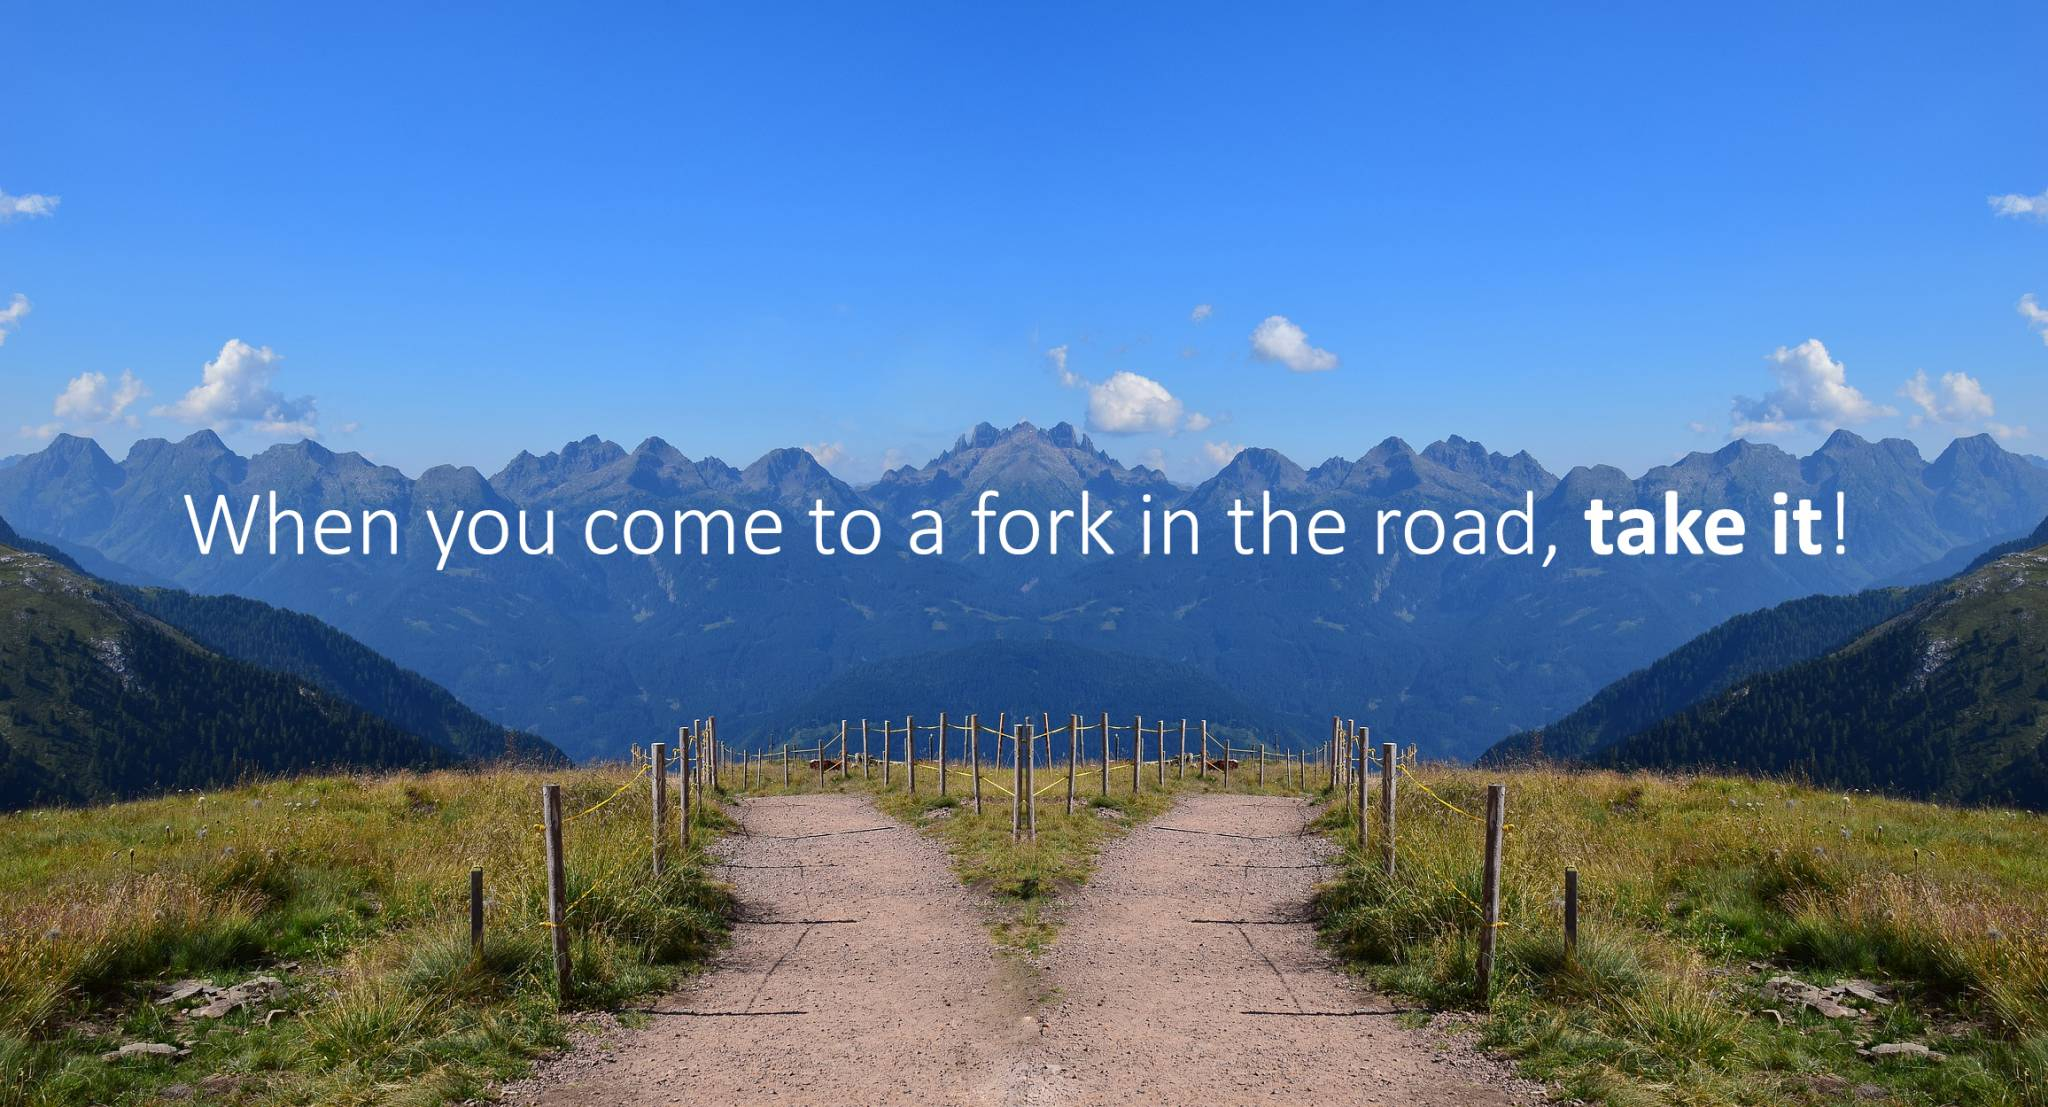 When you come to a fork in the road, take it